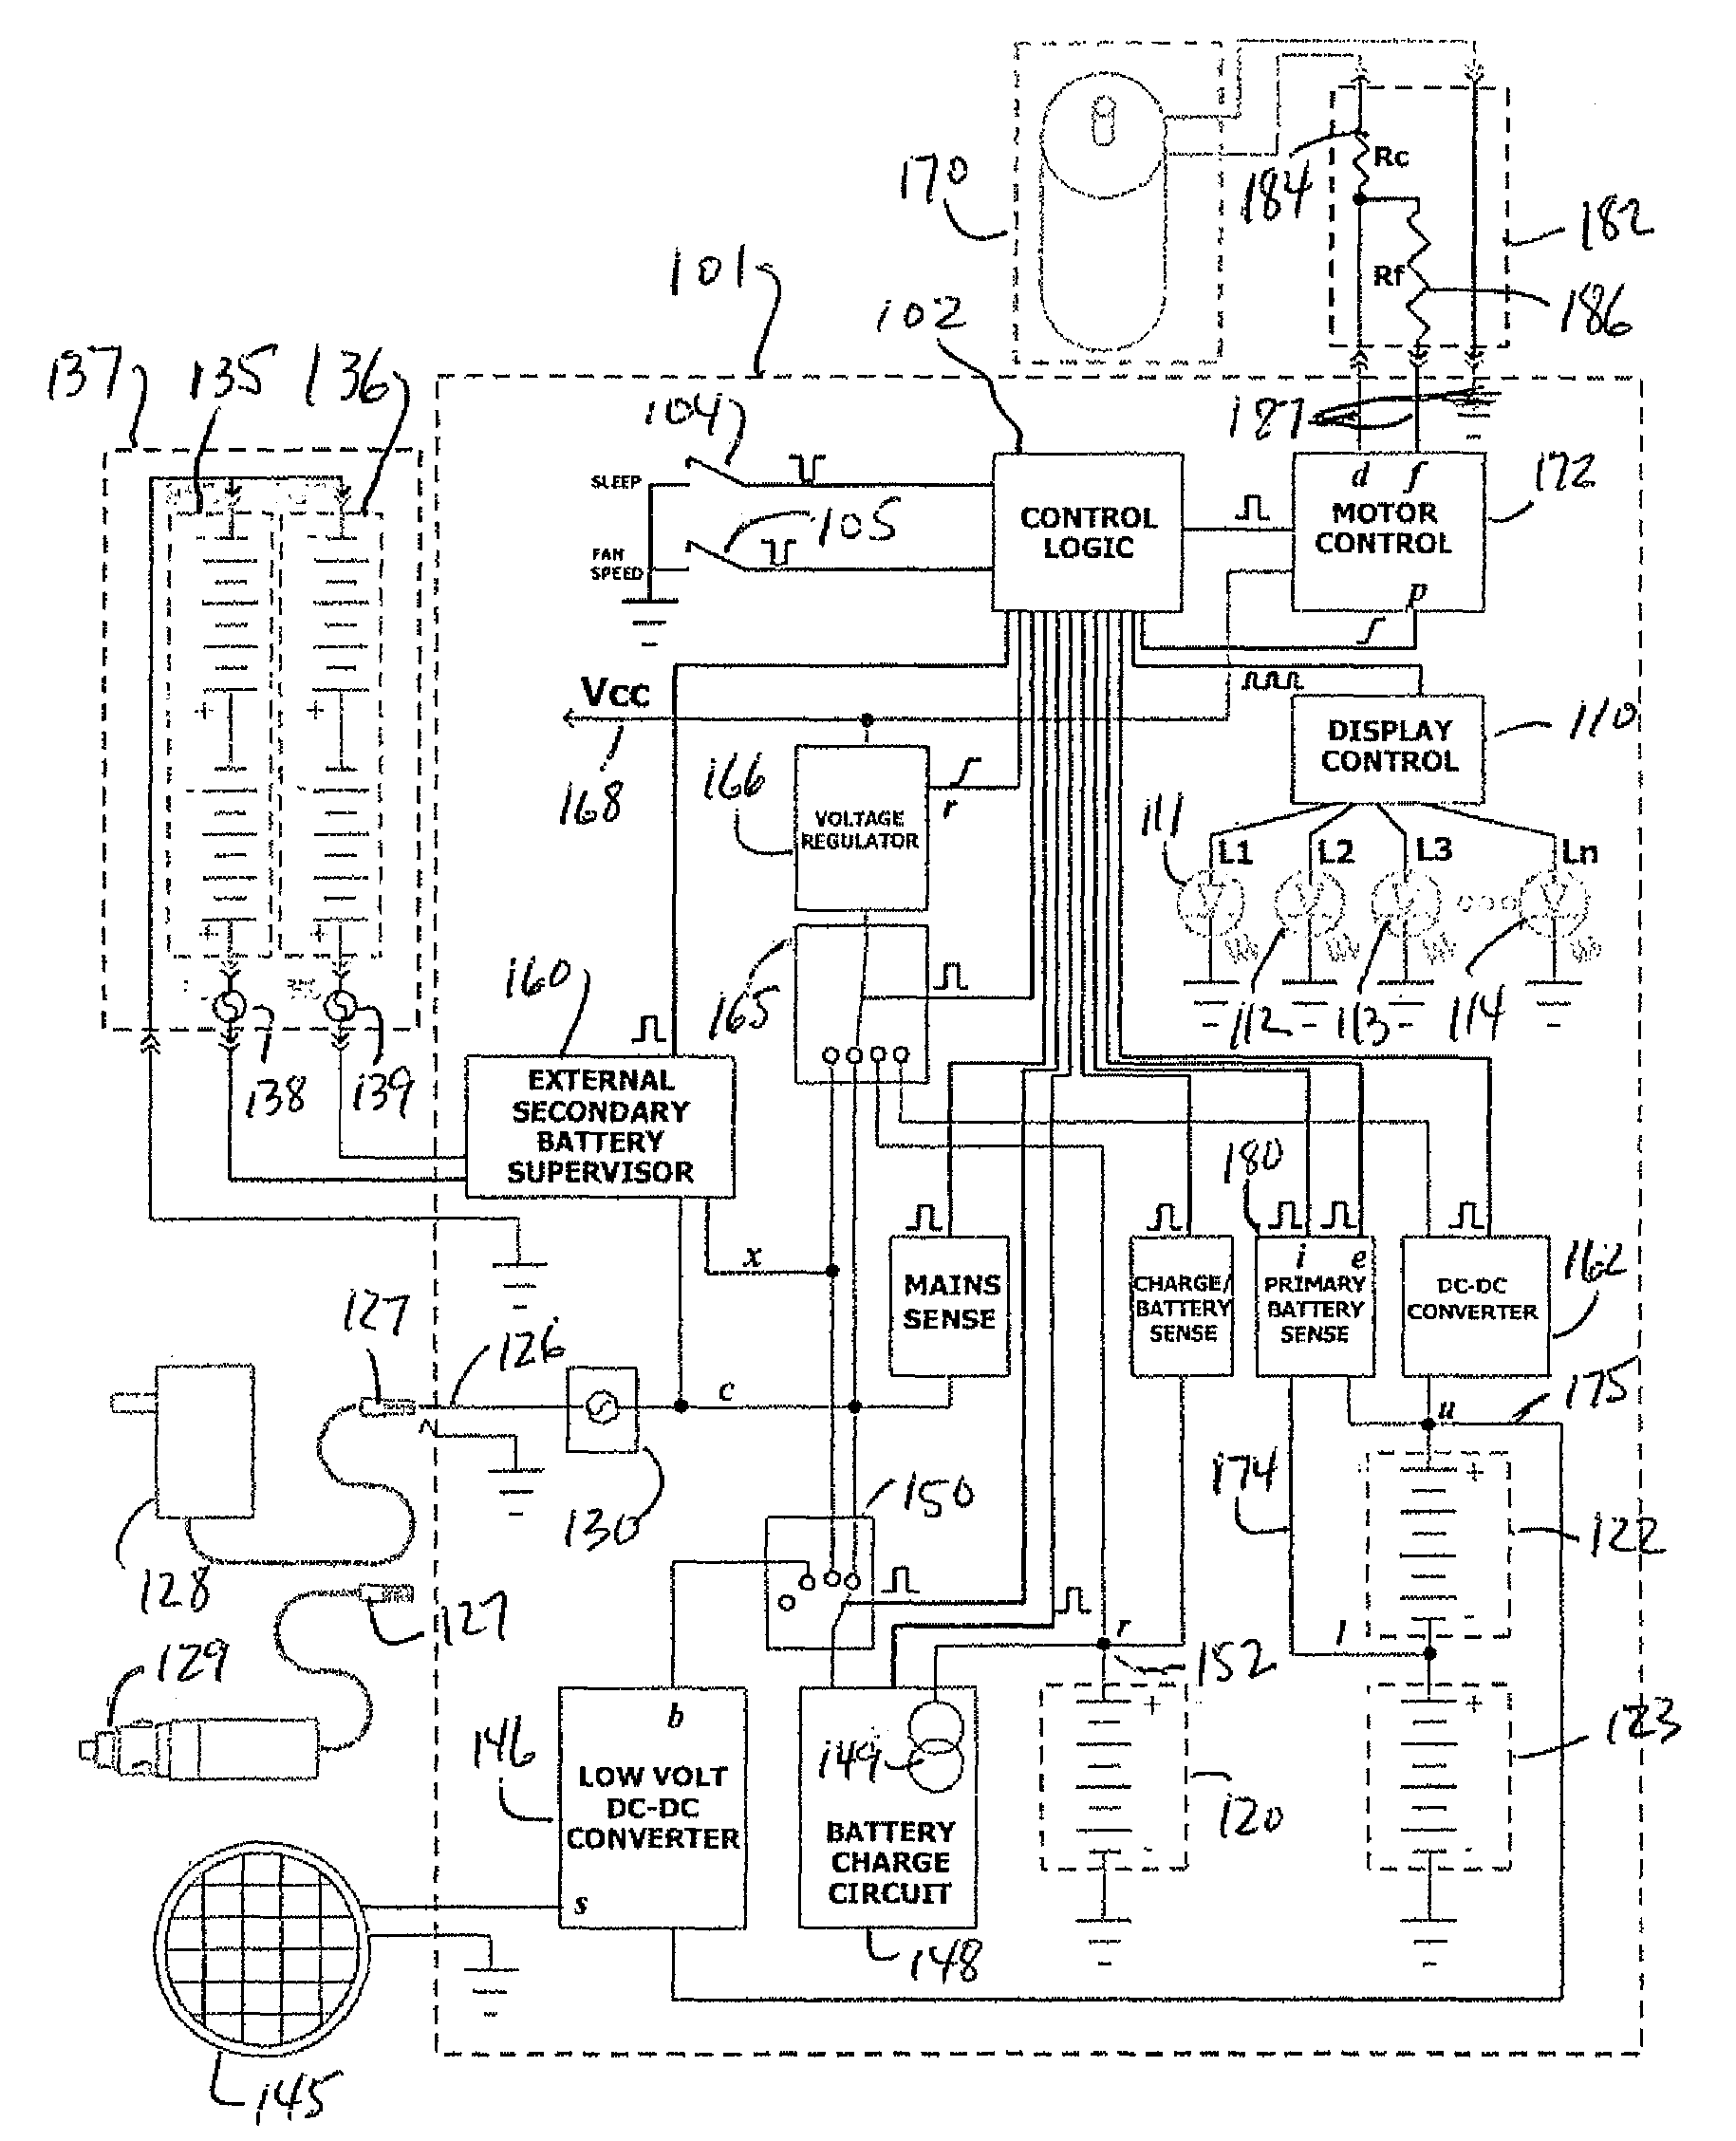 google sketchup electrical schematic  google  free engine